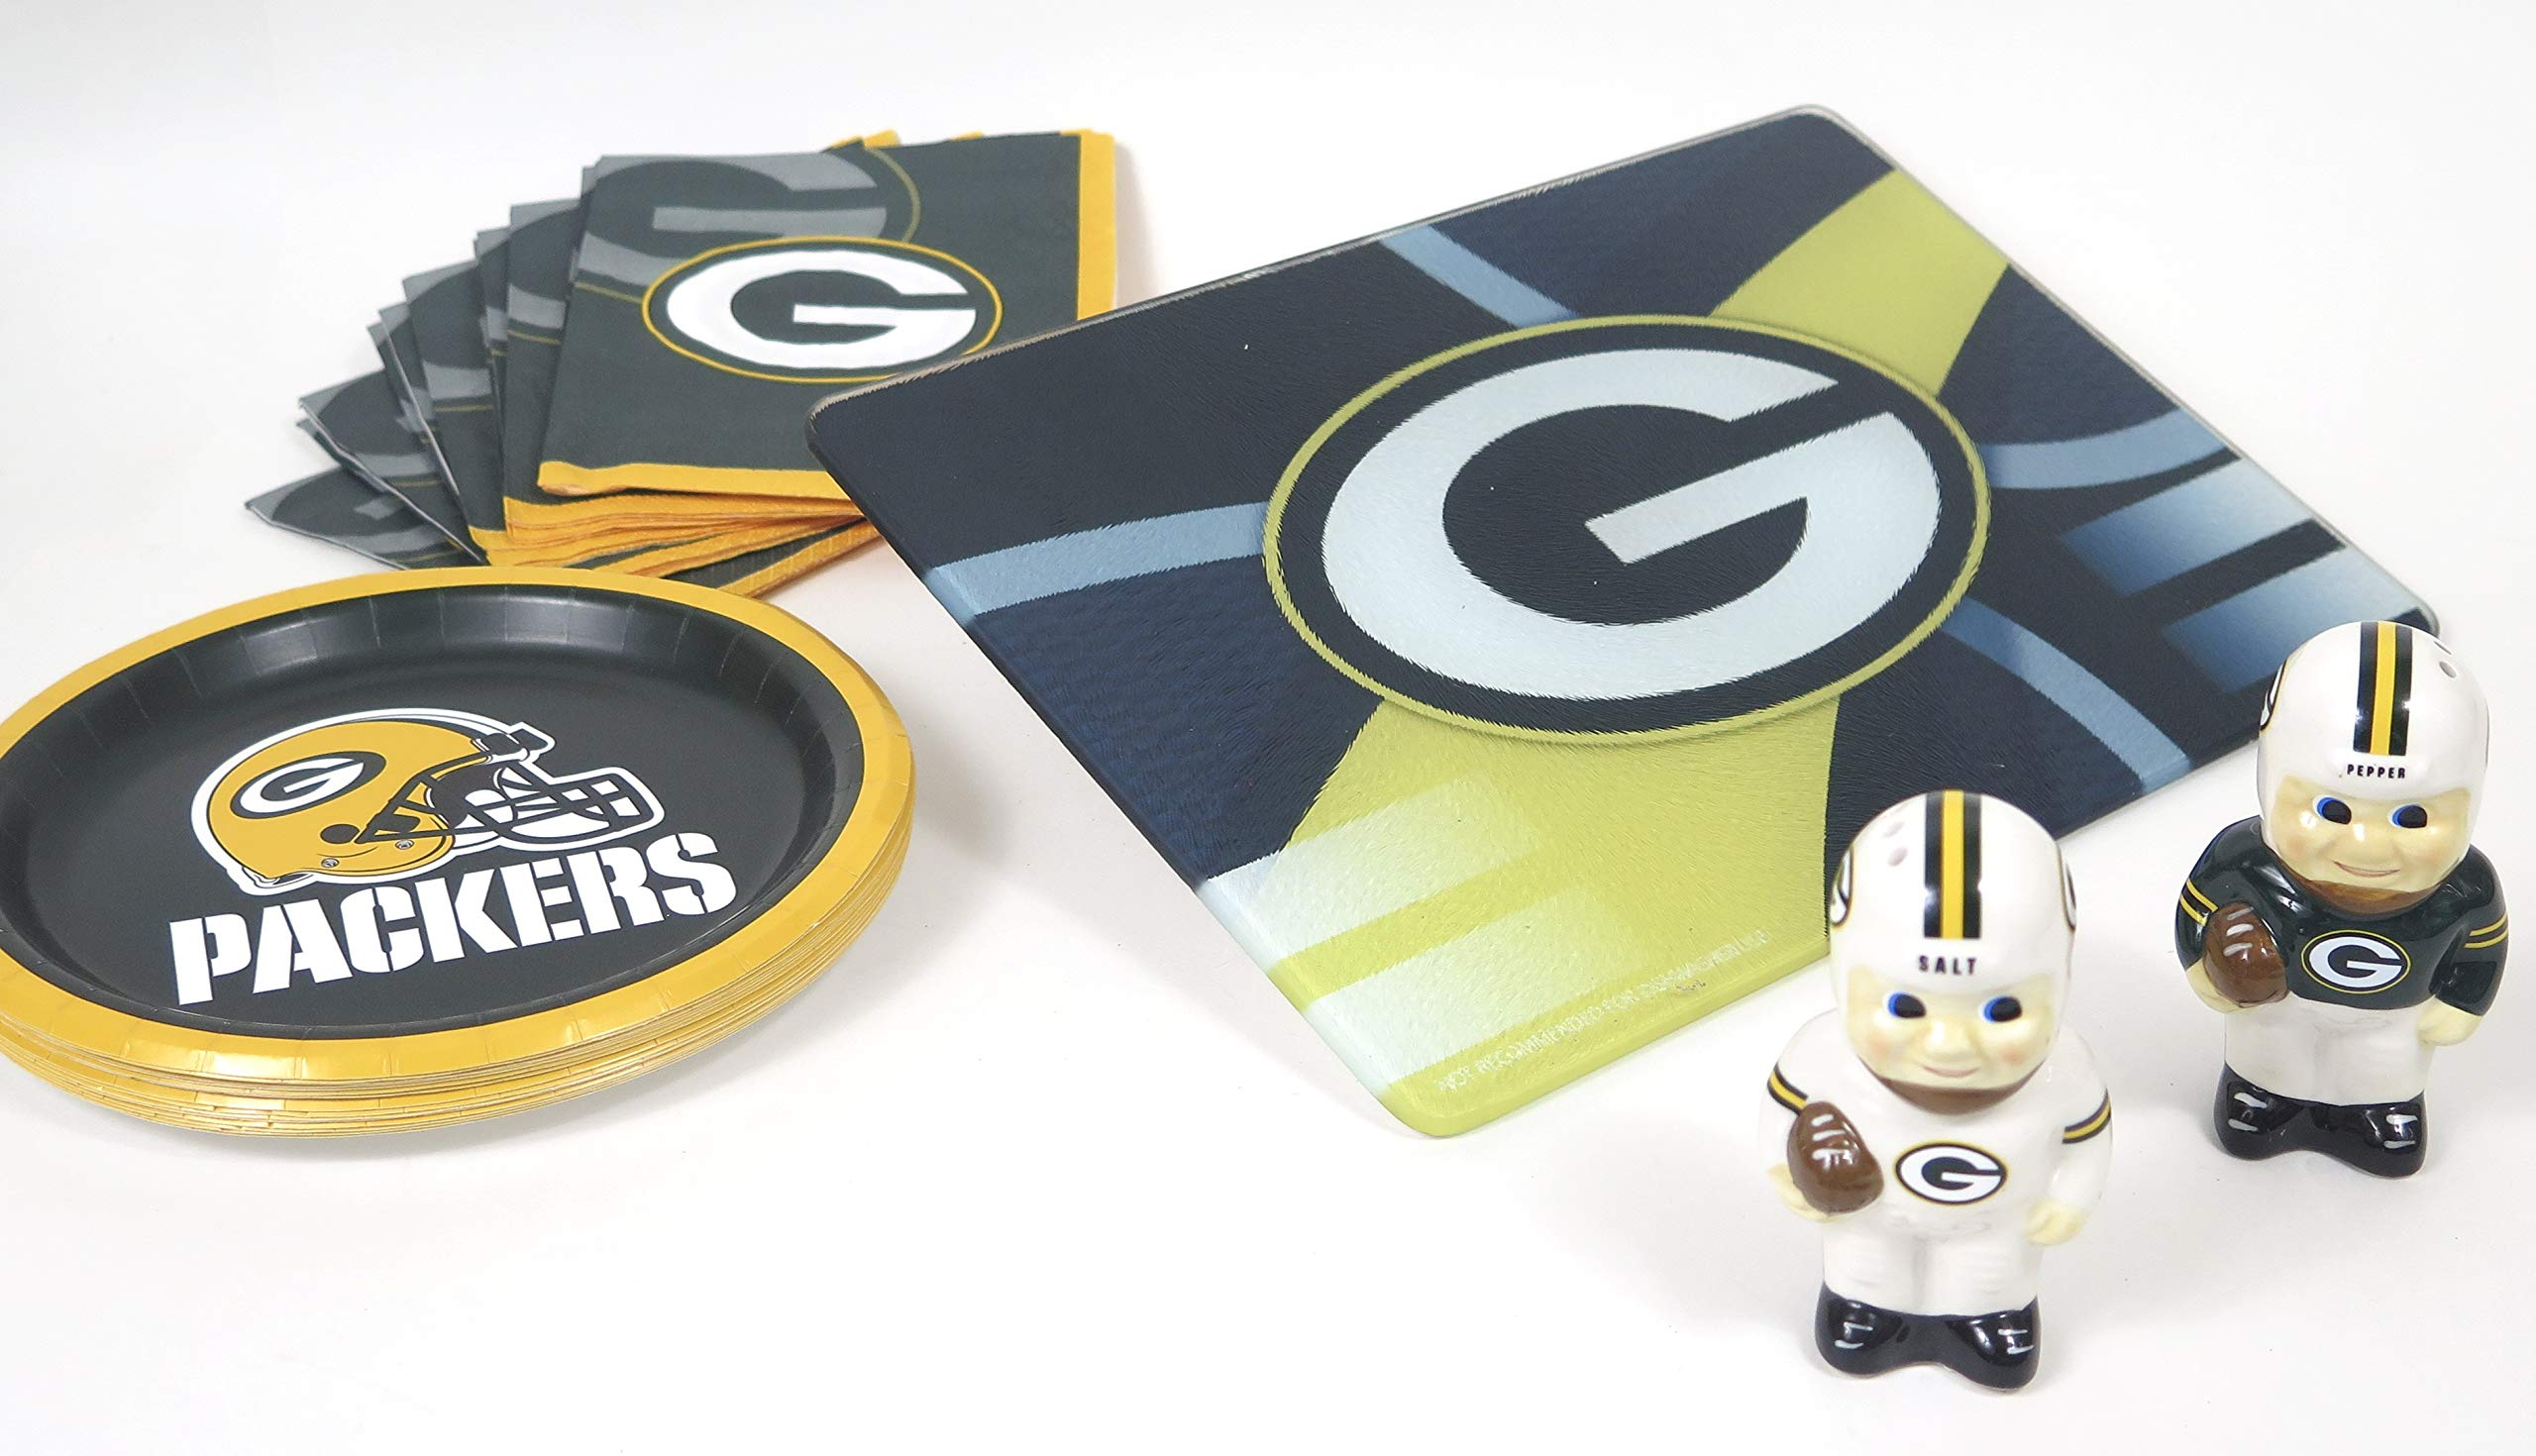 Green Bay Packers Kitchen set, includes cutting board, ceramic salt pepper Shakers, paper plates,Outstanding gift for Valentine's gift. by Green